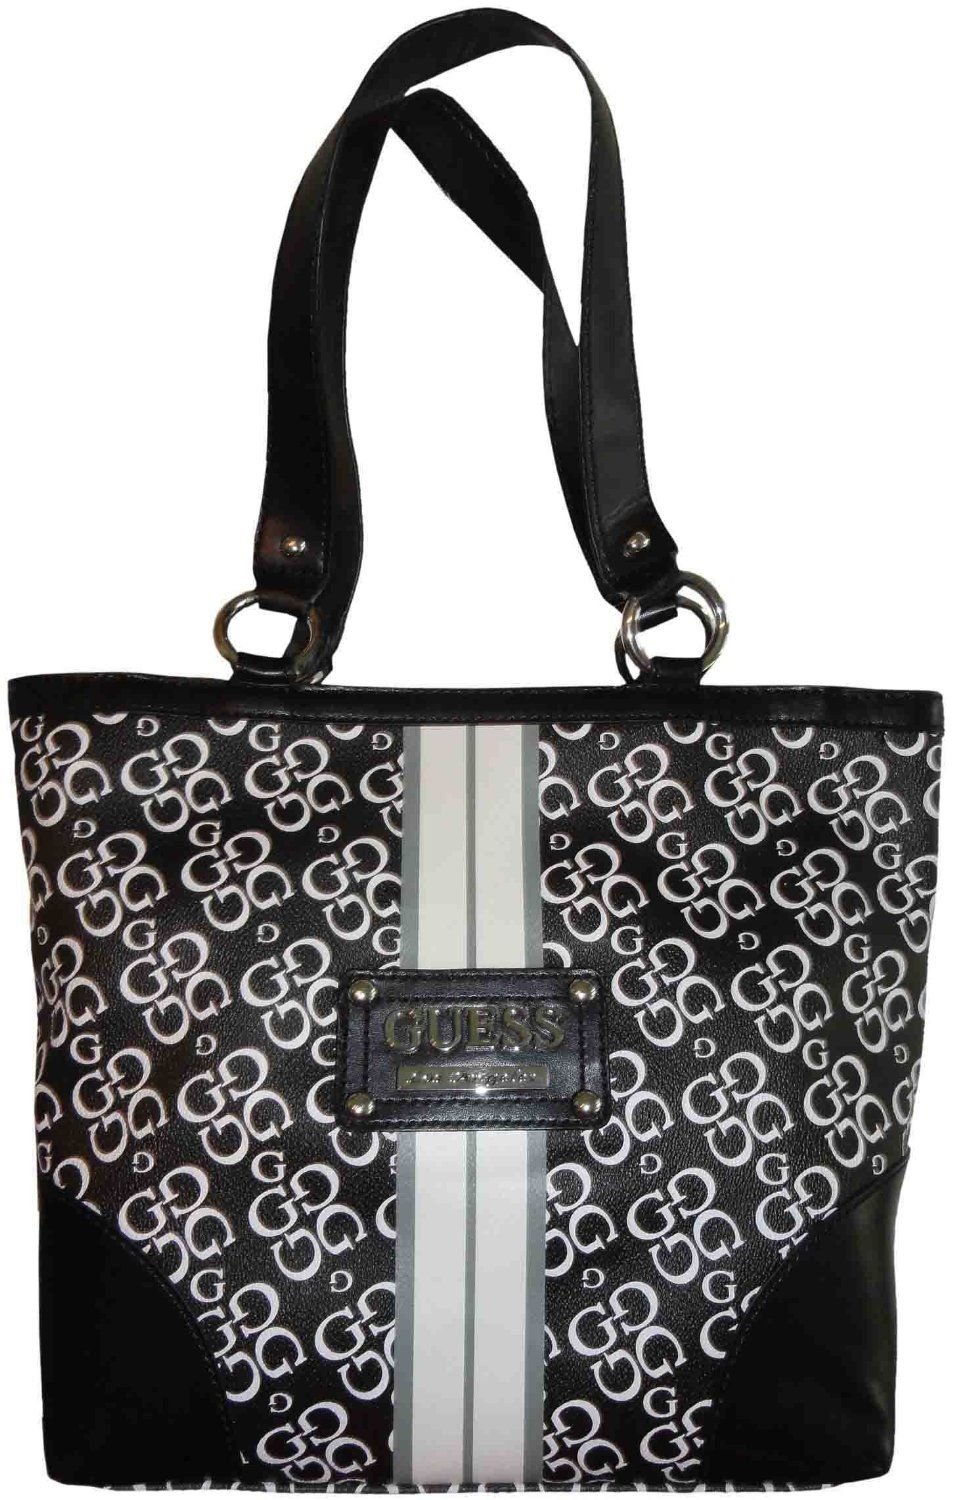 VIDA Tote Bag - Hexagram 5: Xu by VIDA